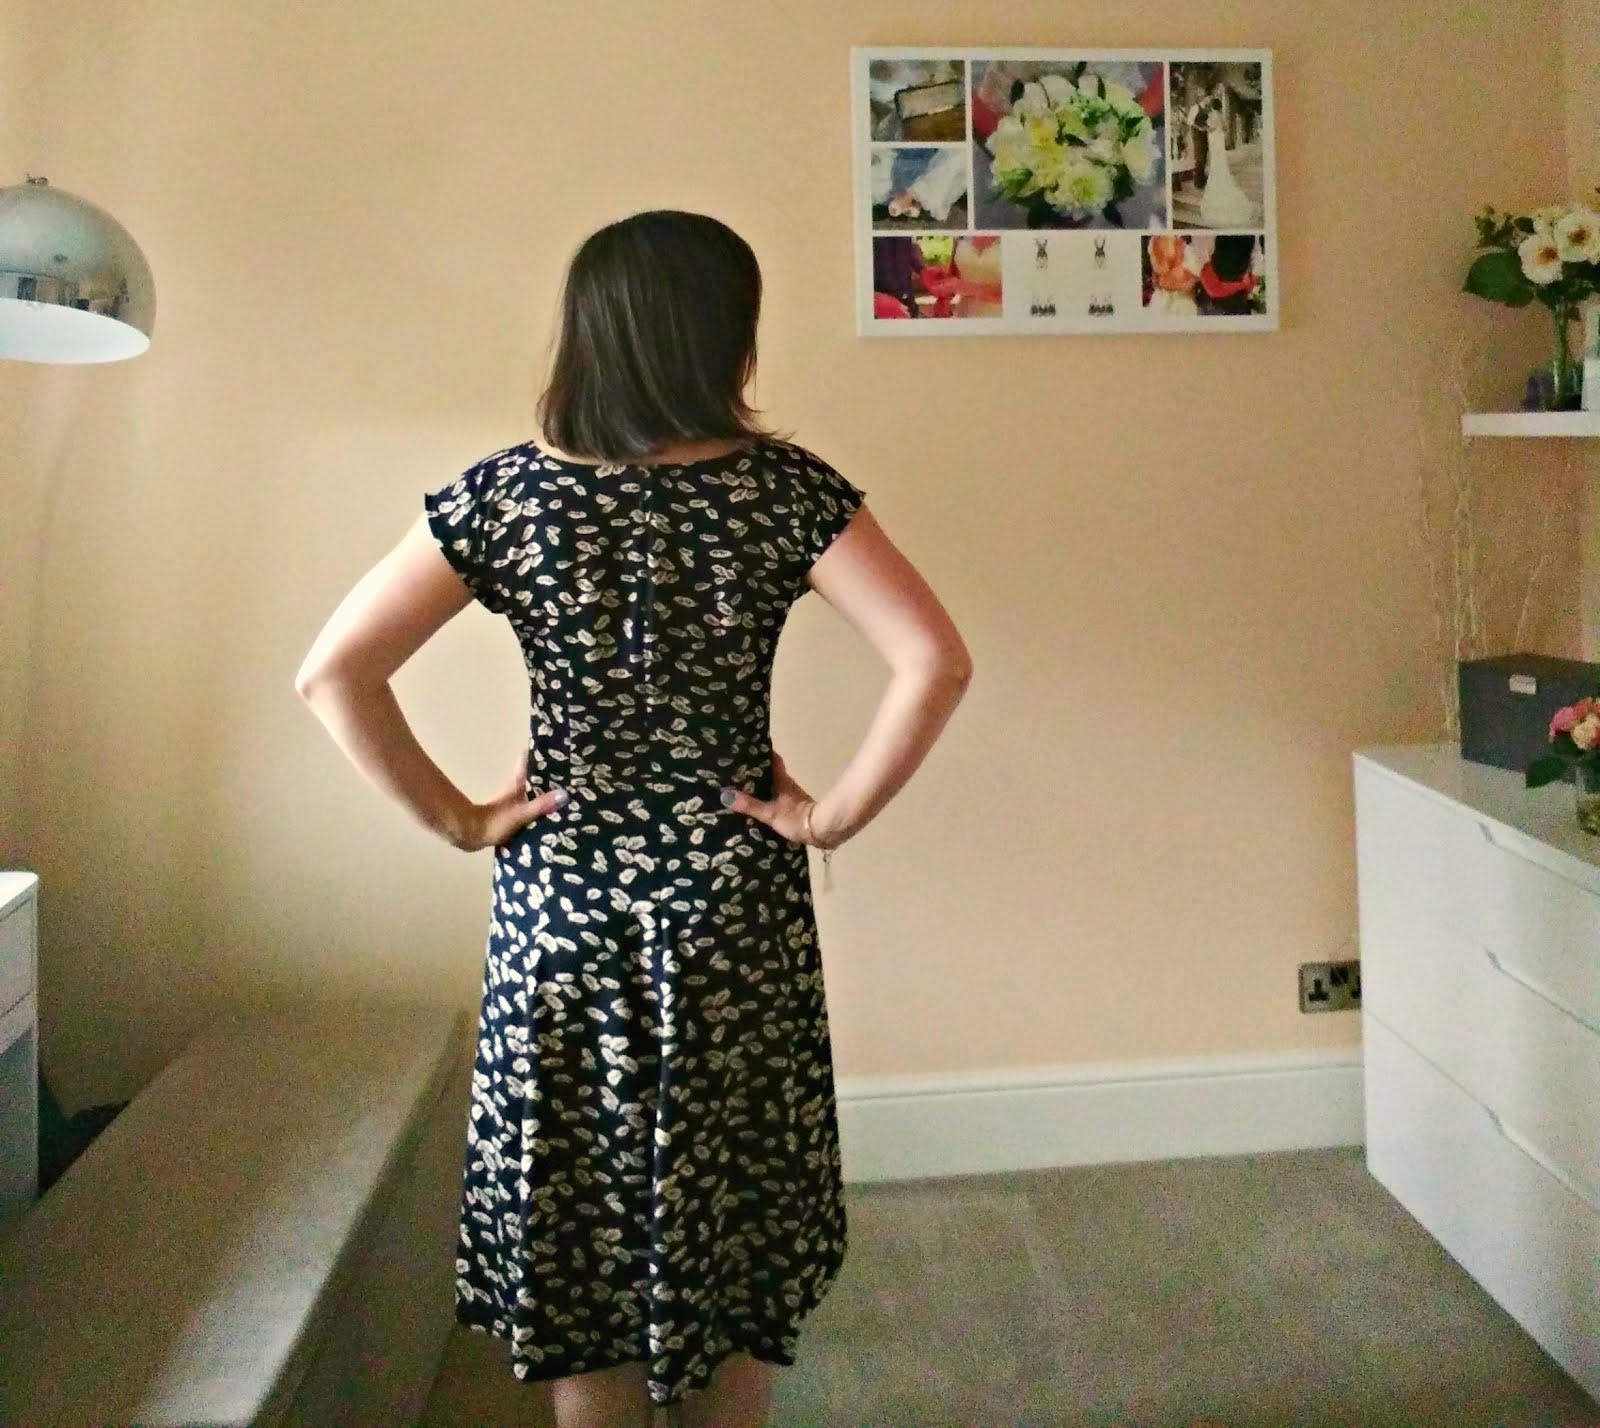 Anna Dress from By Hand London back neckline